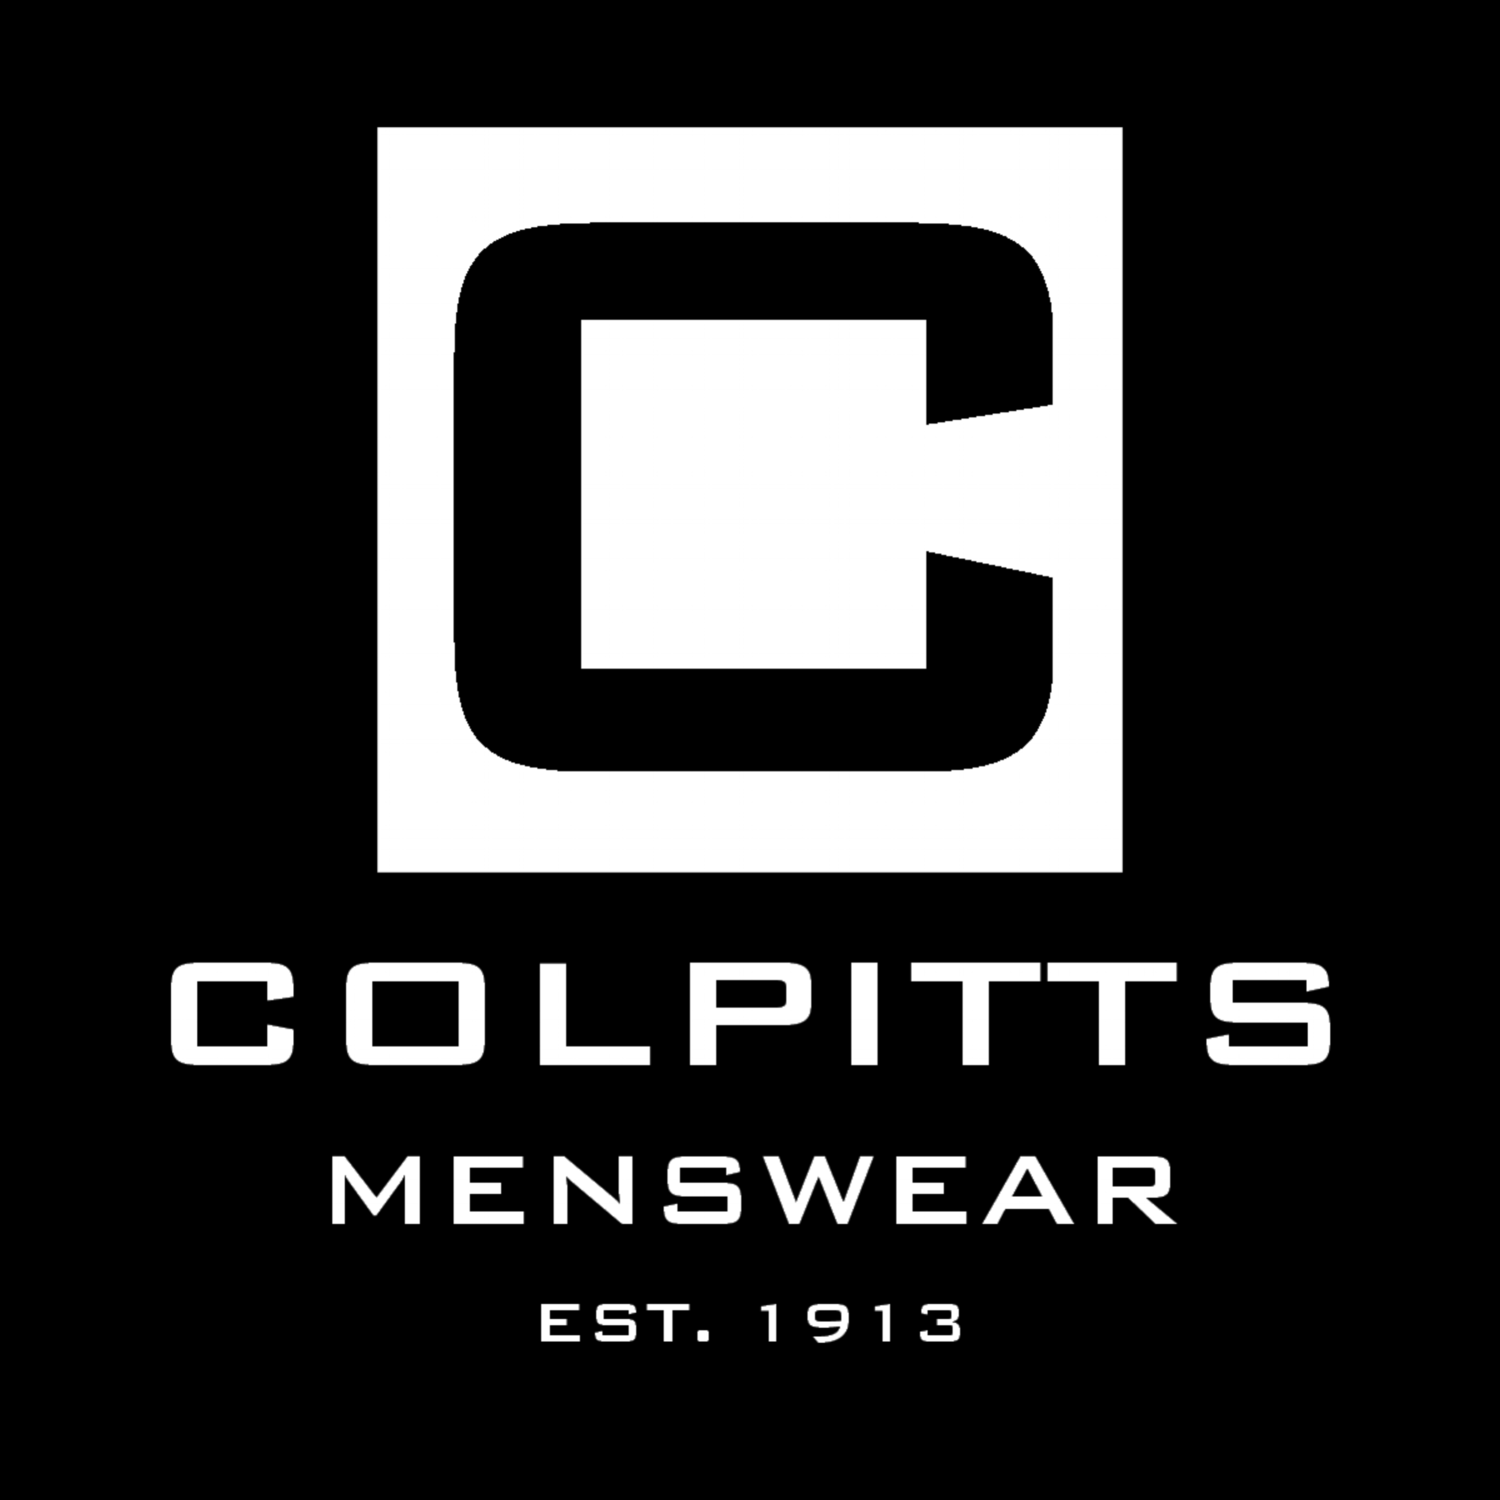 Colpitts